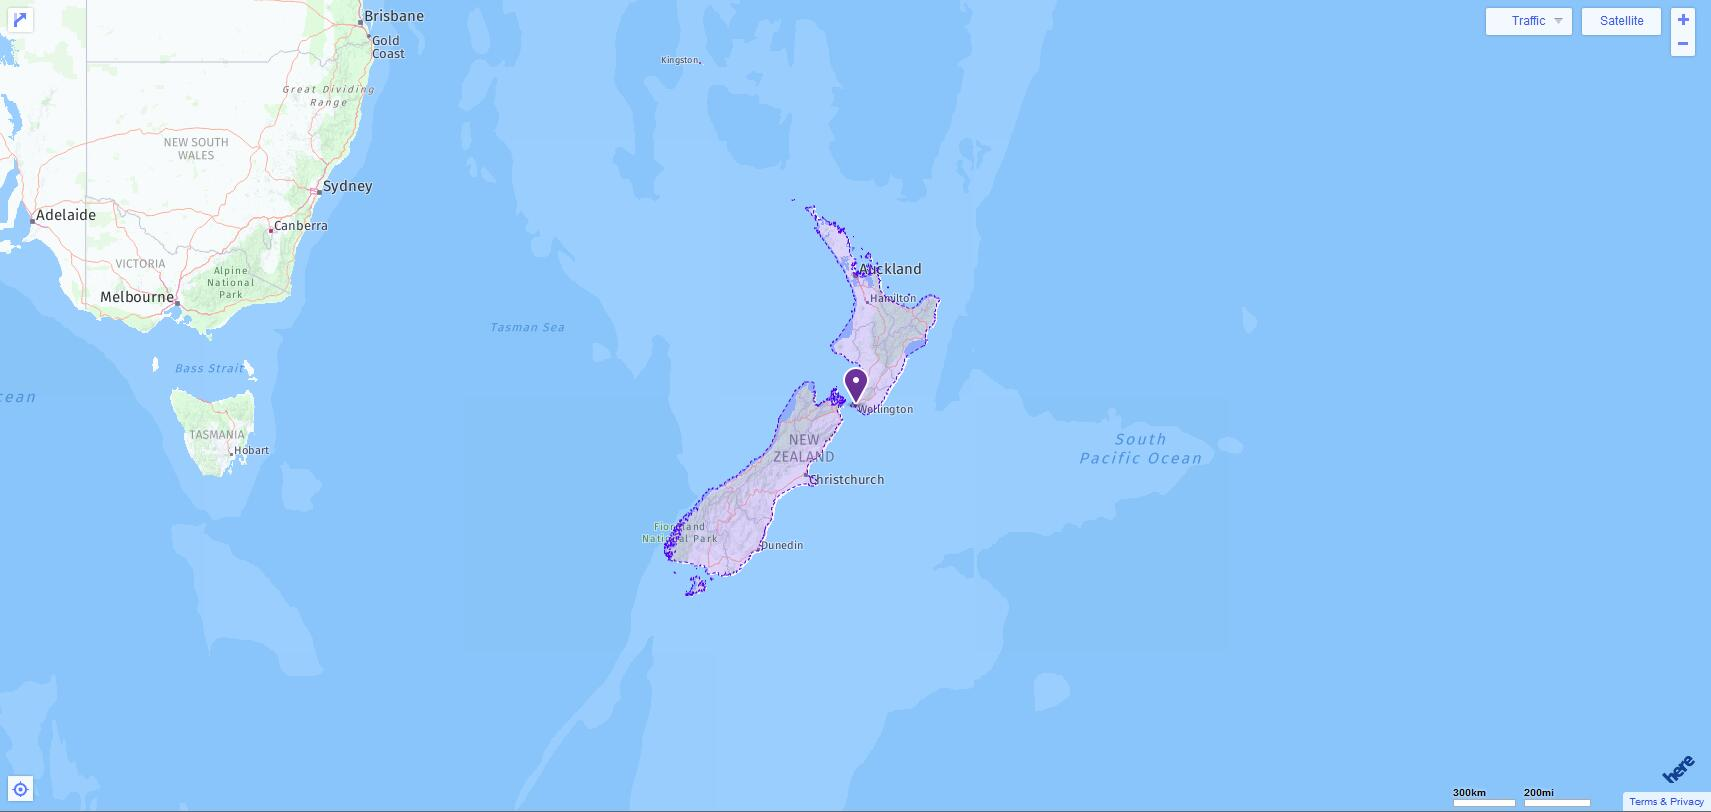 ACT Test Centers and Dates in New Zealand